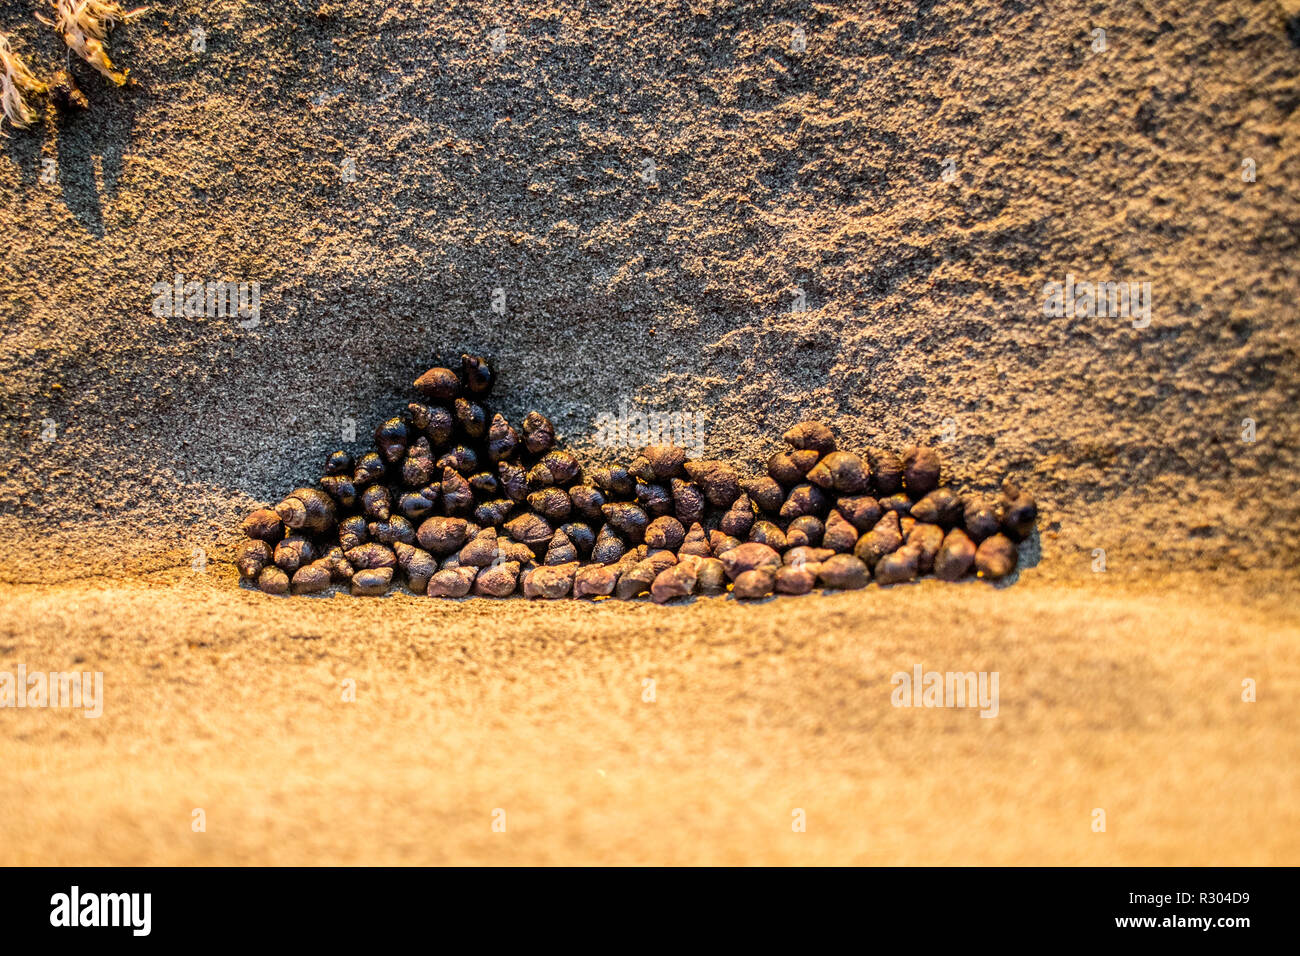 A colony of tiny snails huddles together in a dried-up tide pool near Coos Bay, Oregon. - Stock Image